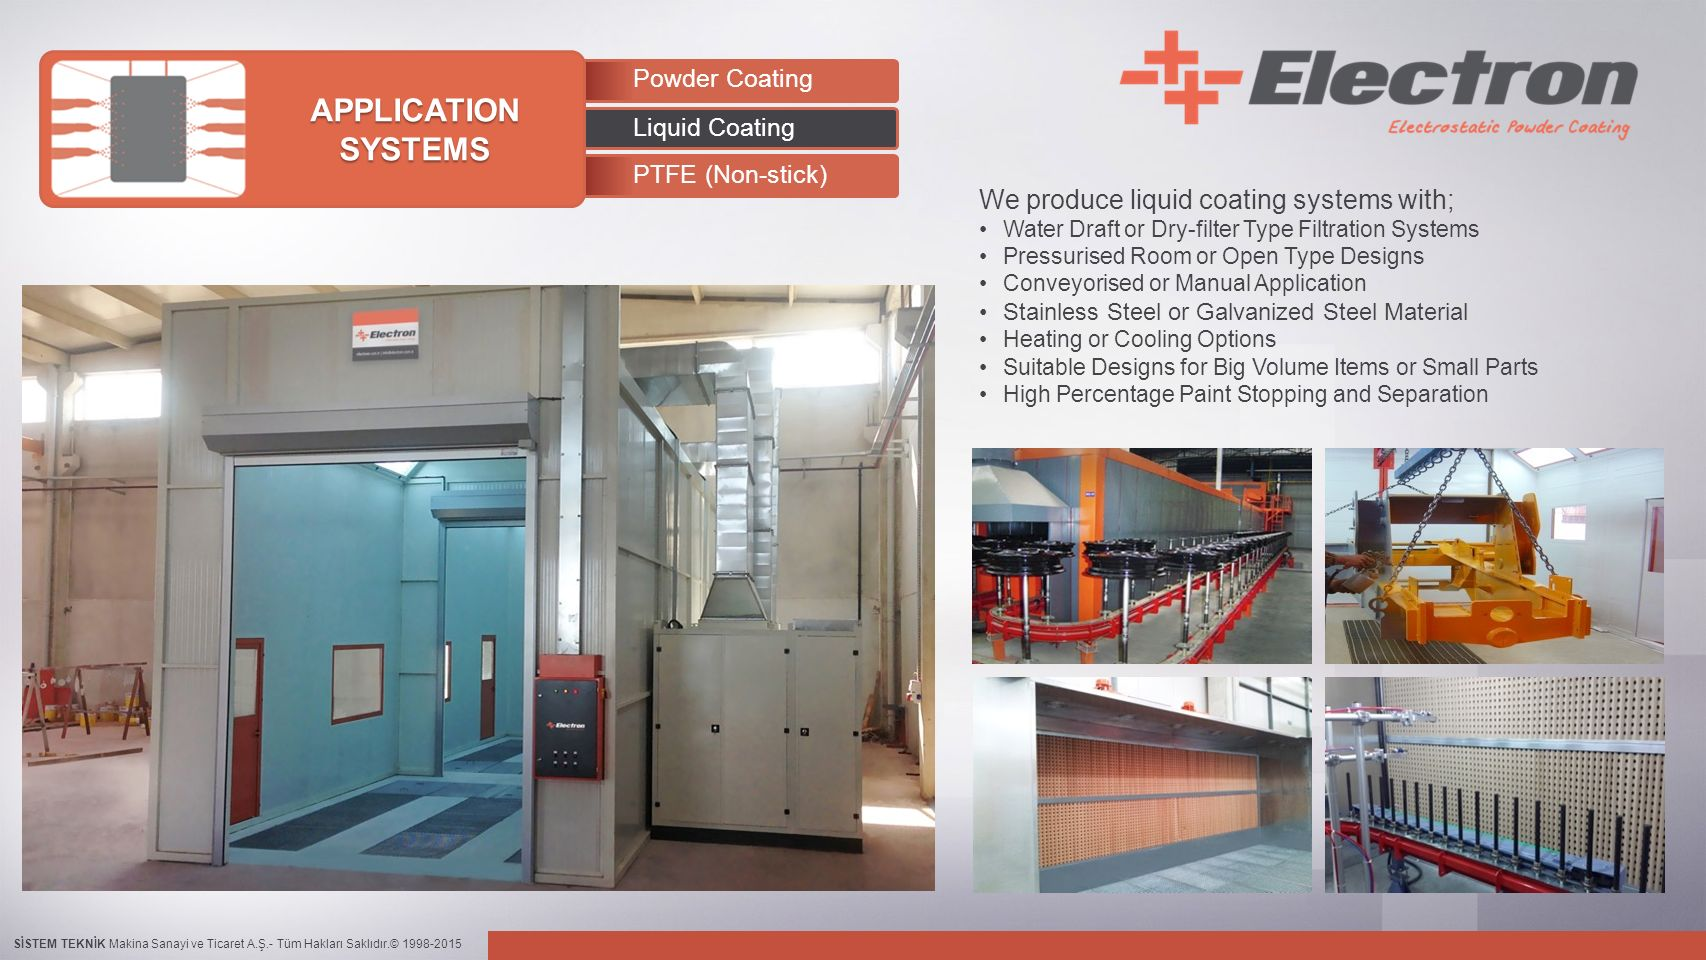 SİSTEM TEKNİK Makina Sanayi ve Ticaret A.Ş.- Tüm Hakları Saklıdır.© 1998-2015 Powder Coating Liquid Coating PTFE (Non-stick) APPLICATION SYSTEMS We produce liquid coating systems with; Water Draft or Dry-filter Type Filtration Systems Pressurised Room or Open Type Designs Conveyorised or Manual Application Stainless Steel or Galvanized Steel Material Heating or Cooling Options Suitable Designs for Big Volume Items or Small Parts High Percentage Paint Stopping and Separation